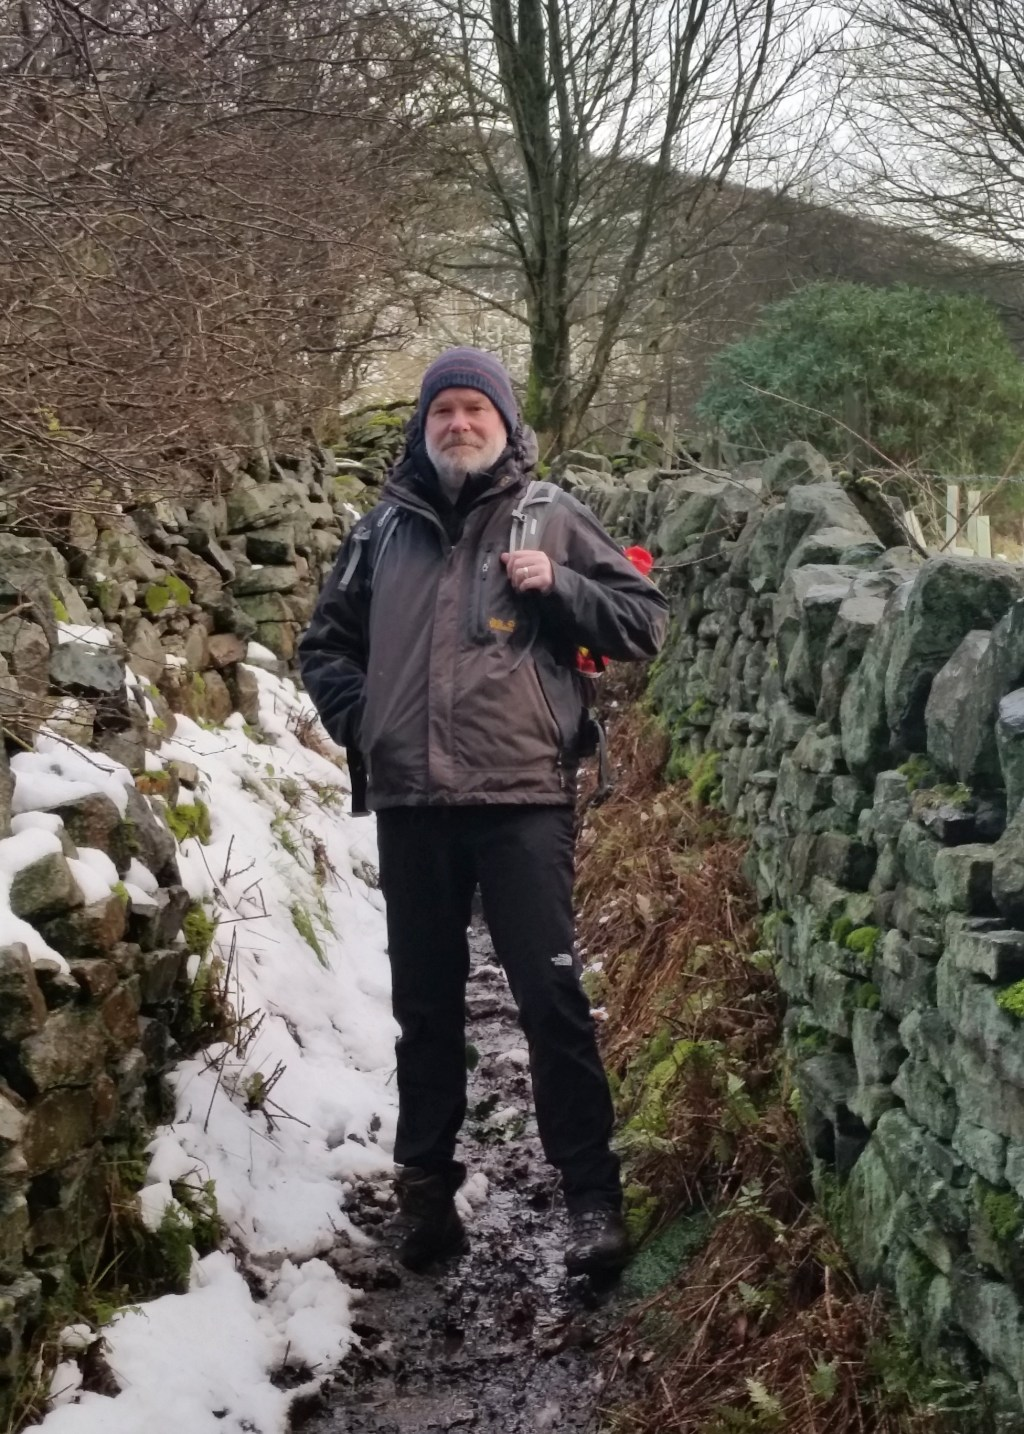 Kit Review The North Face Diablo Pants moors walk